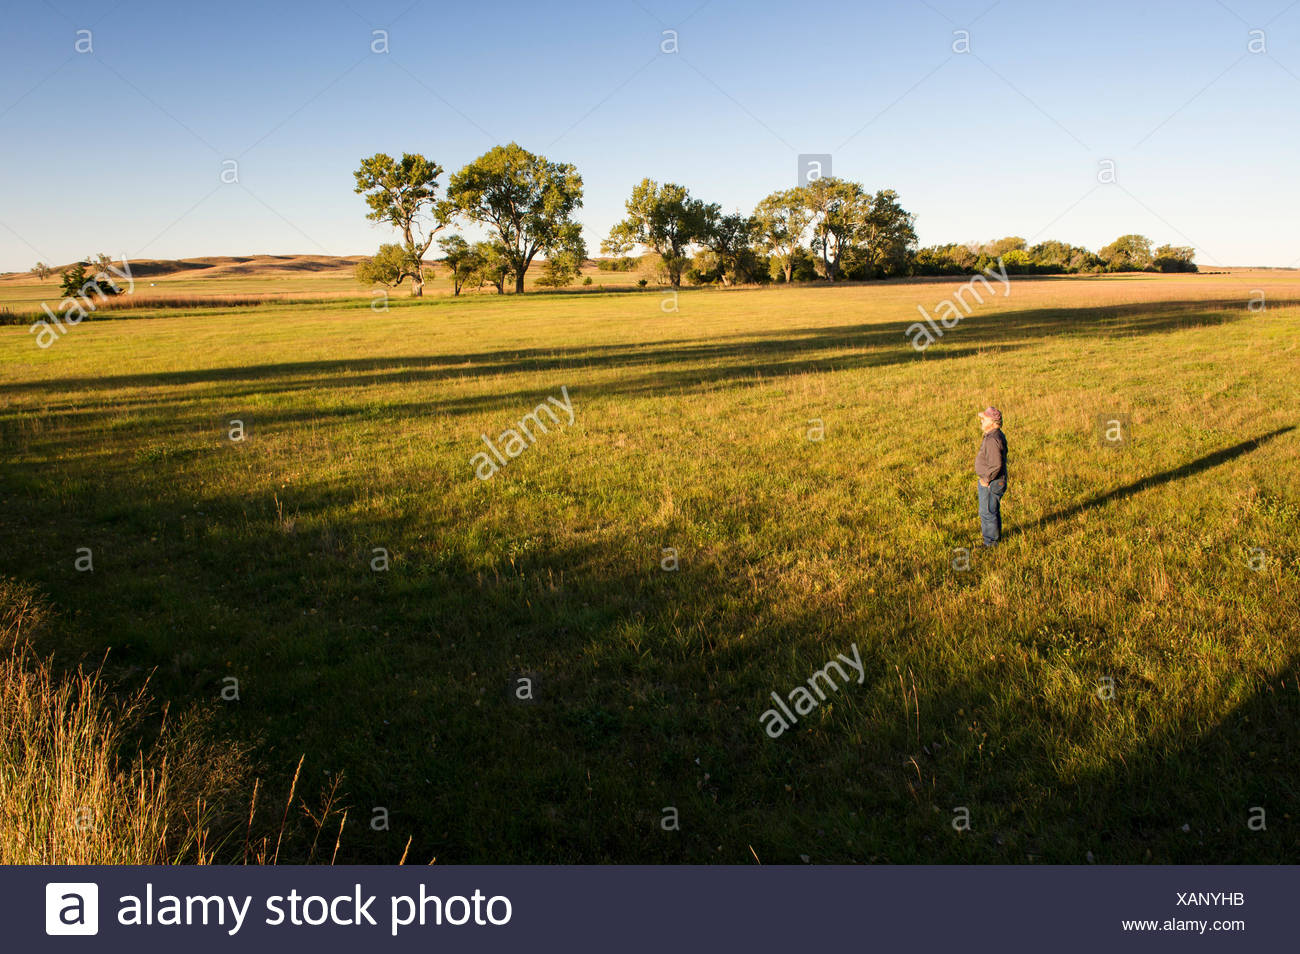 Lynn Ballagh looking out over his property, where the proposed NPPD power transmission line would pollute the landscape. Ballagh cattle ranch in the Sandhills of Nebraska, Garfield County, Nebraska, USA. - Stock Image